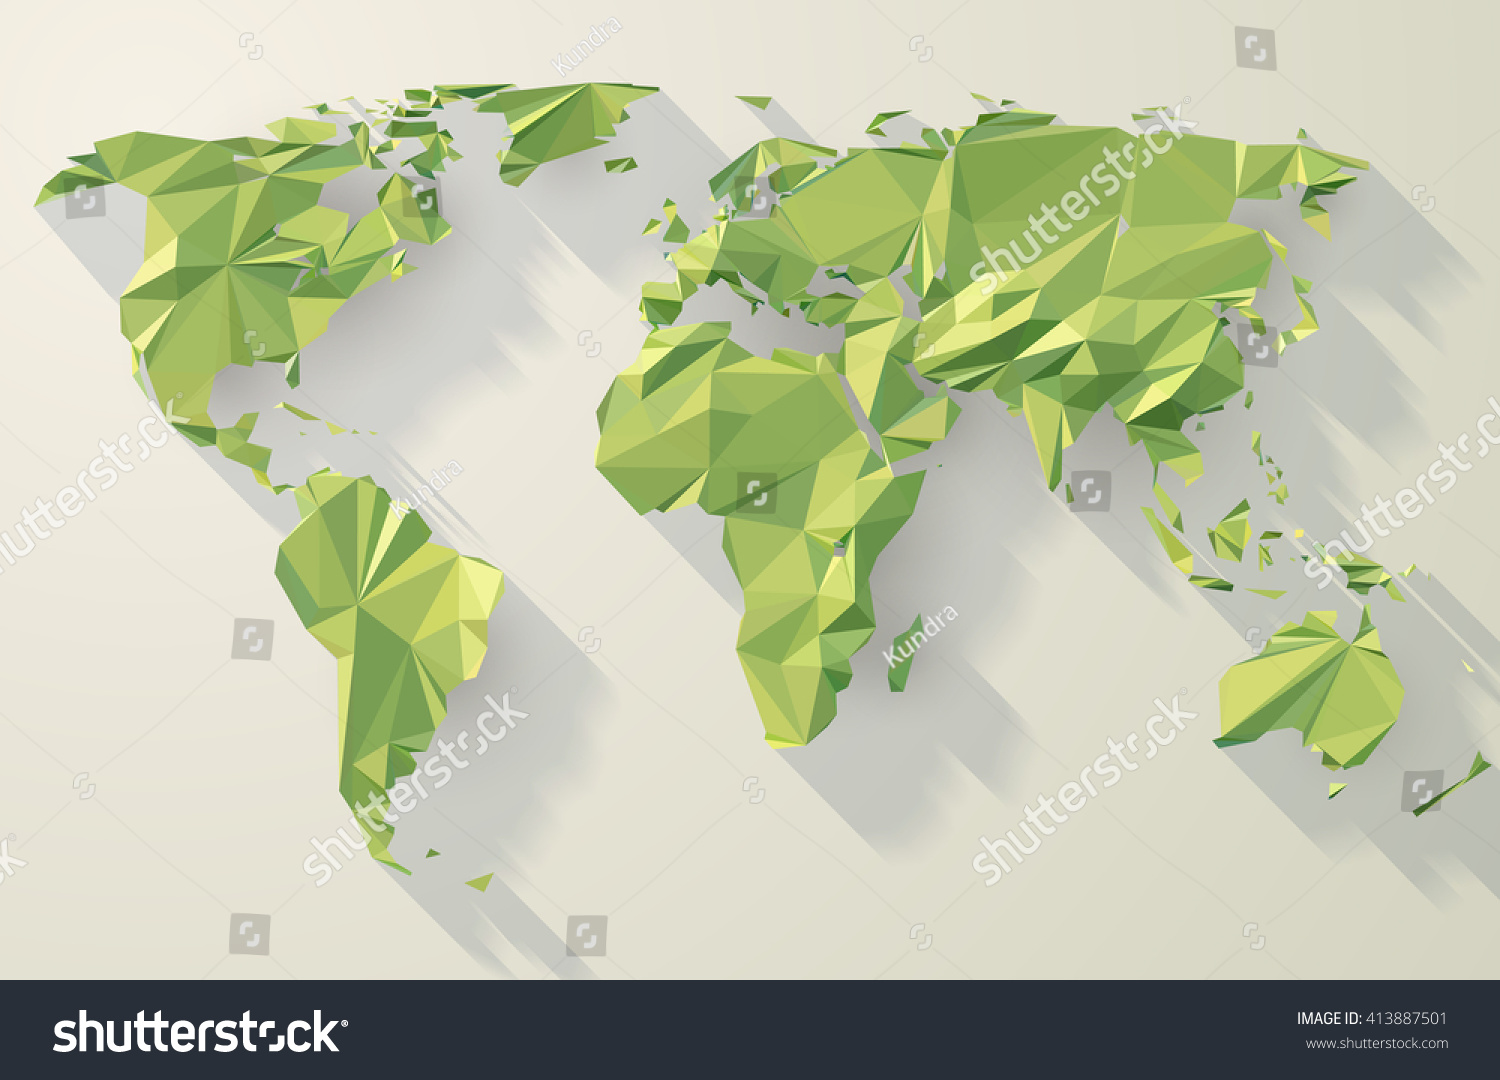 Vector world map low poly design stock vector 413887501 shutterstock vector world map low poly design green origami planet illustration gumiabroncs Image collections